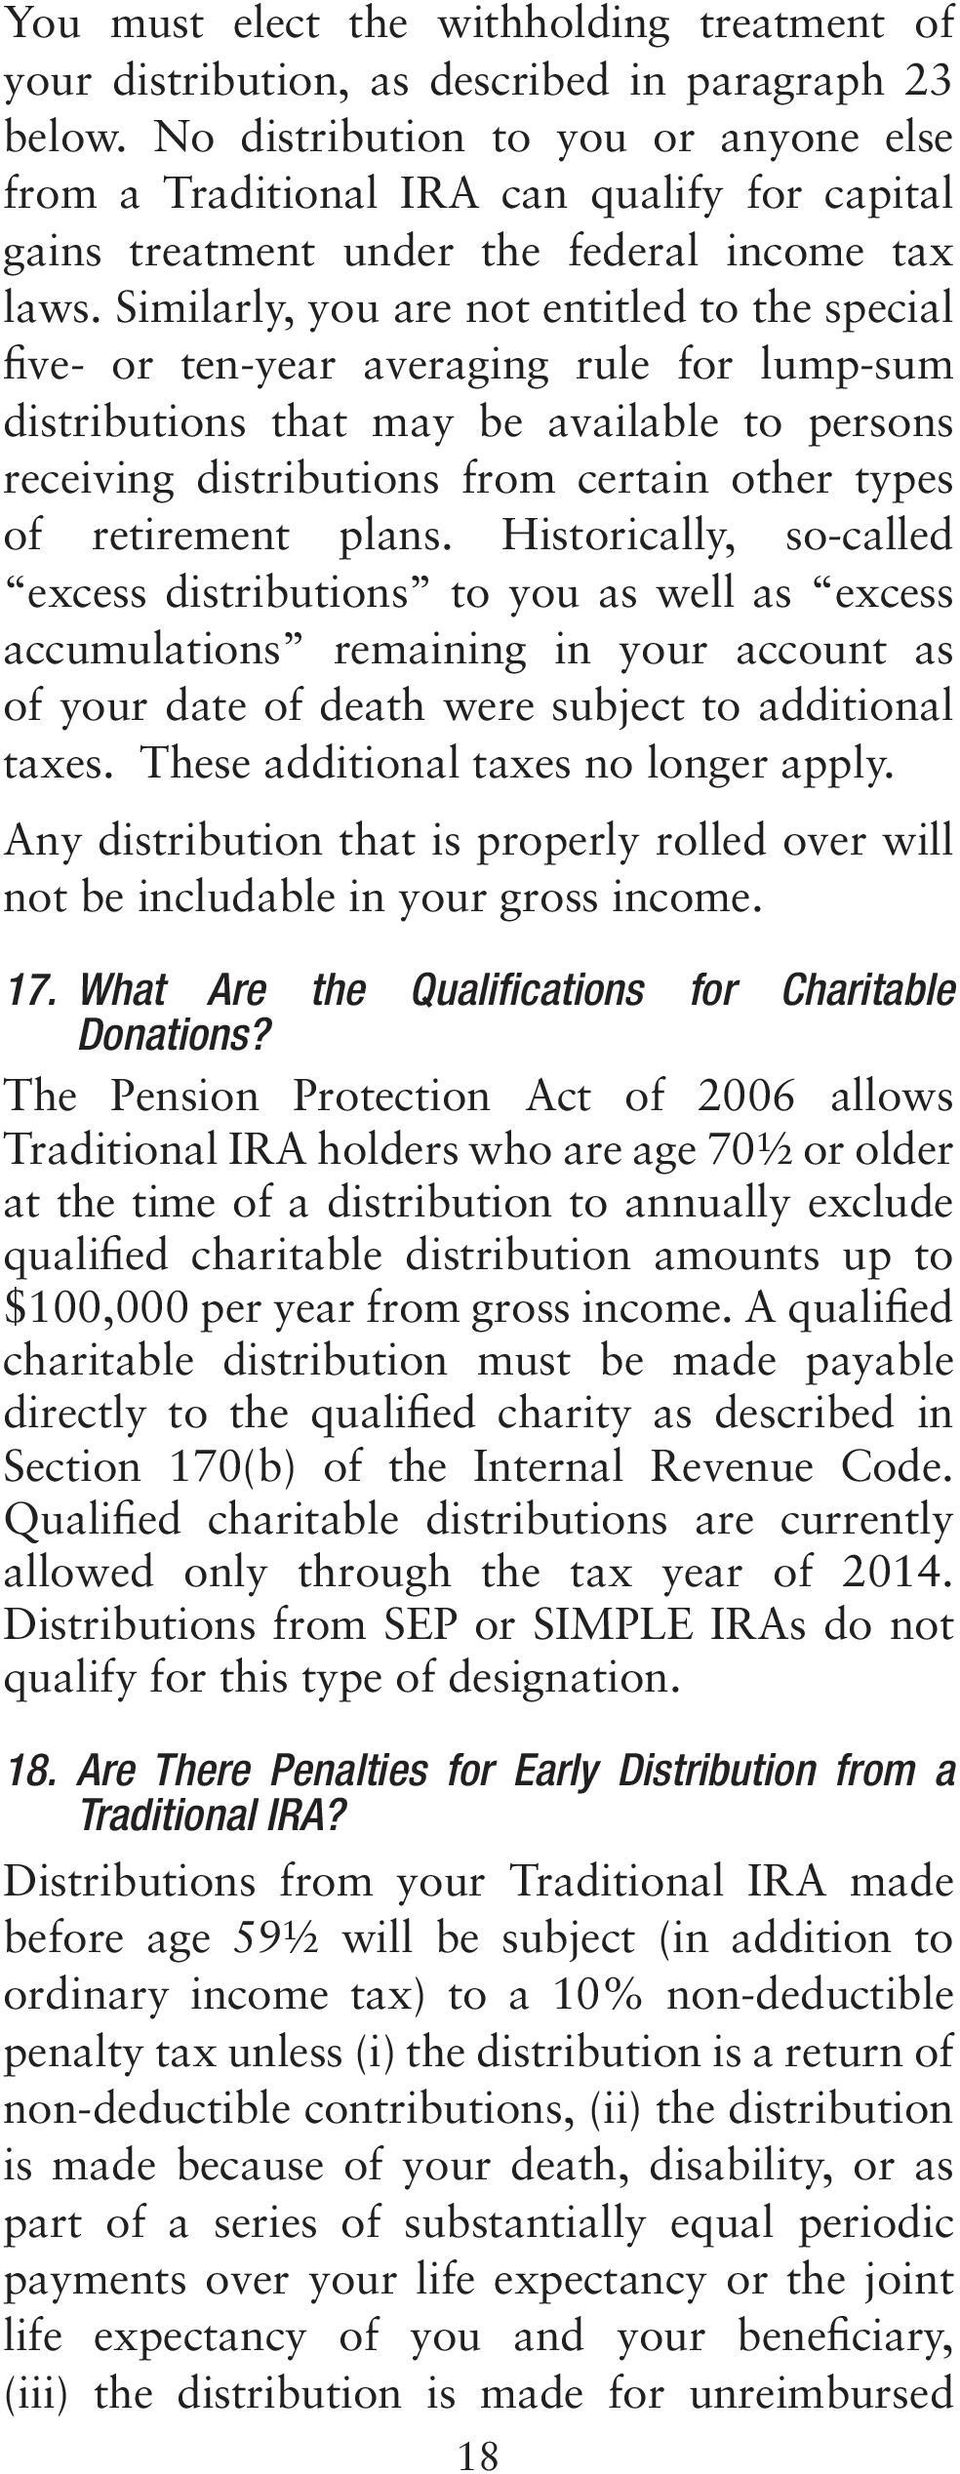 Similarly, you are not entitled to the special five- or ten-year averaging rule for lump-sum distributions that may be available to persons receiving distributions from certain other types of